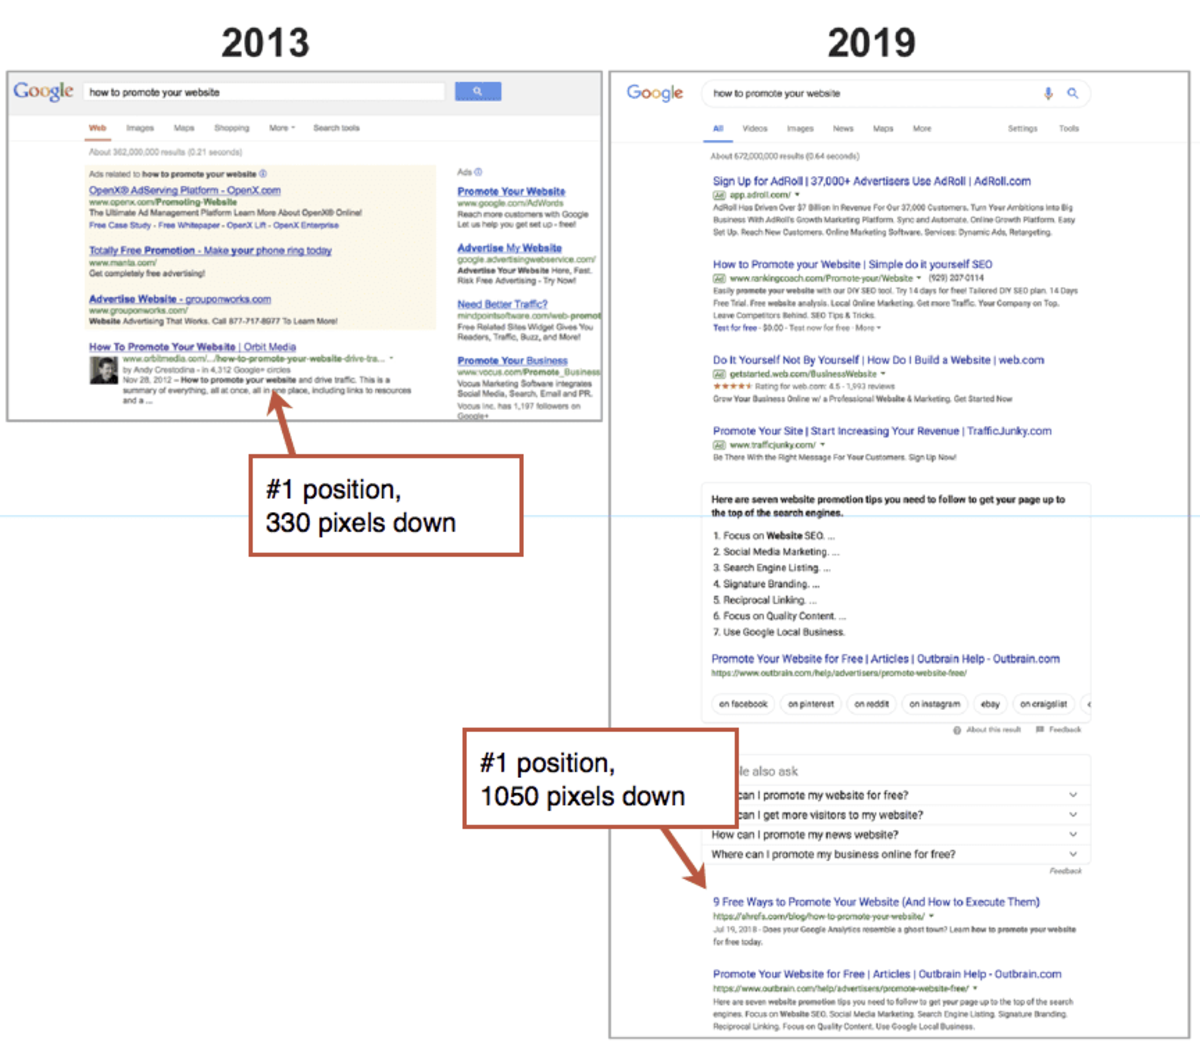 If you look at what a search result page looked like five years ago, it's vastly different than what it looks like today.